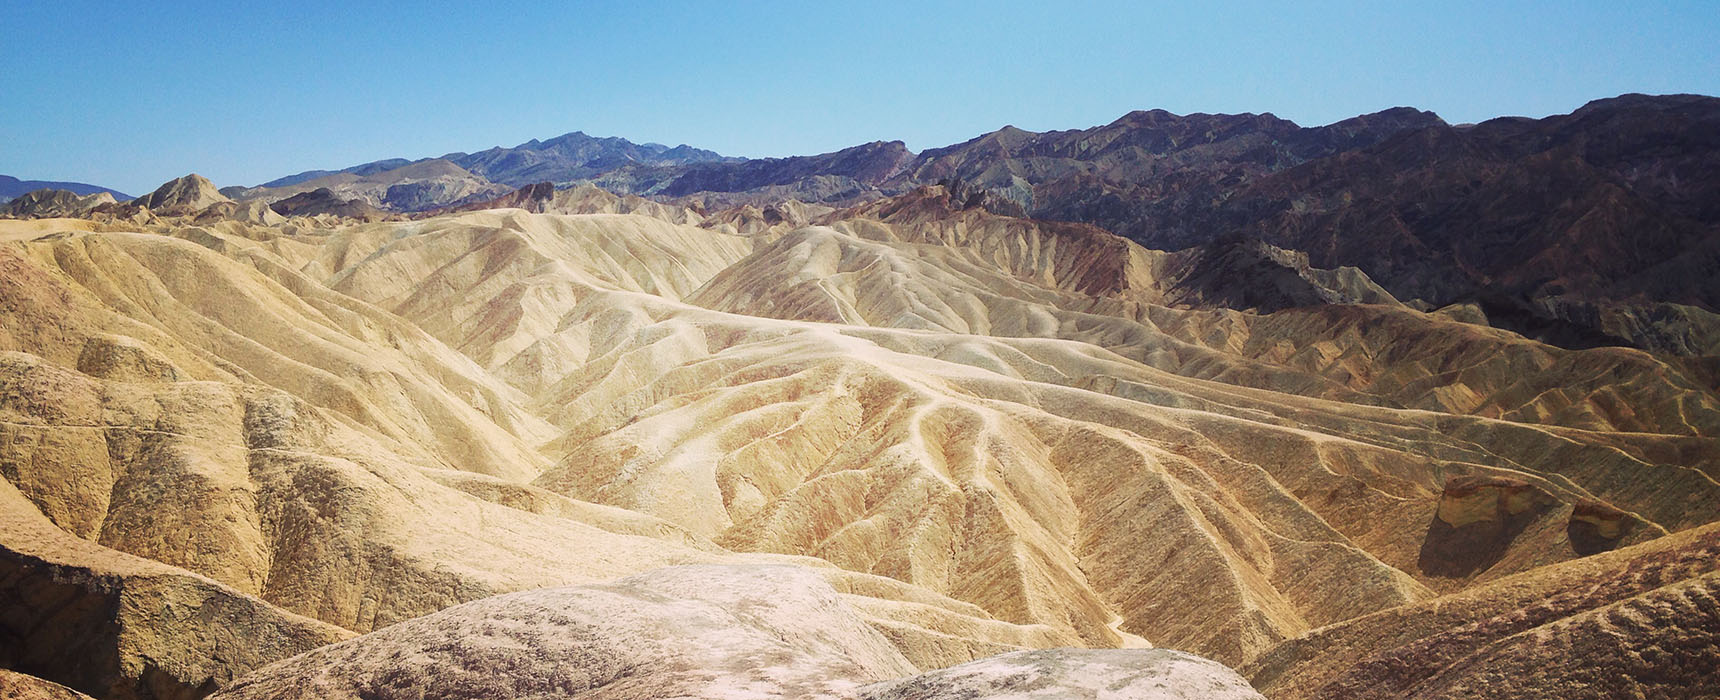 Zabriskie Point Vallée de la mort Californie Death Valley National Park